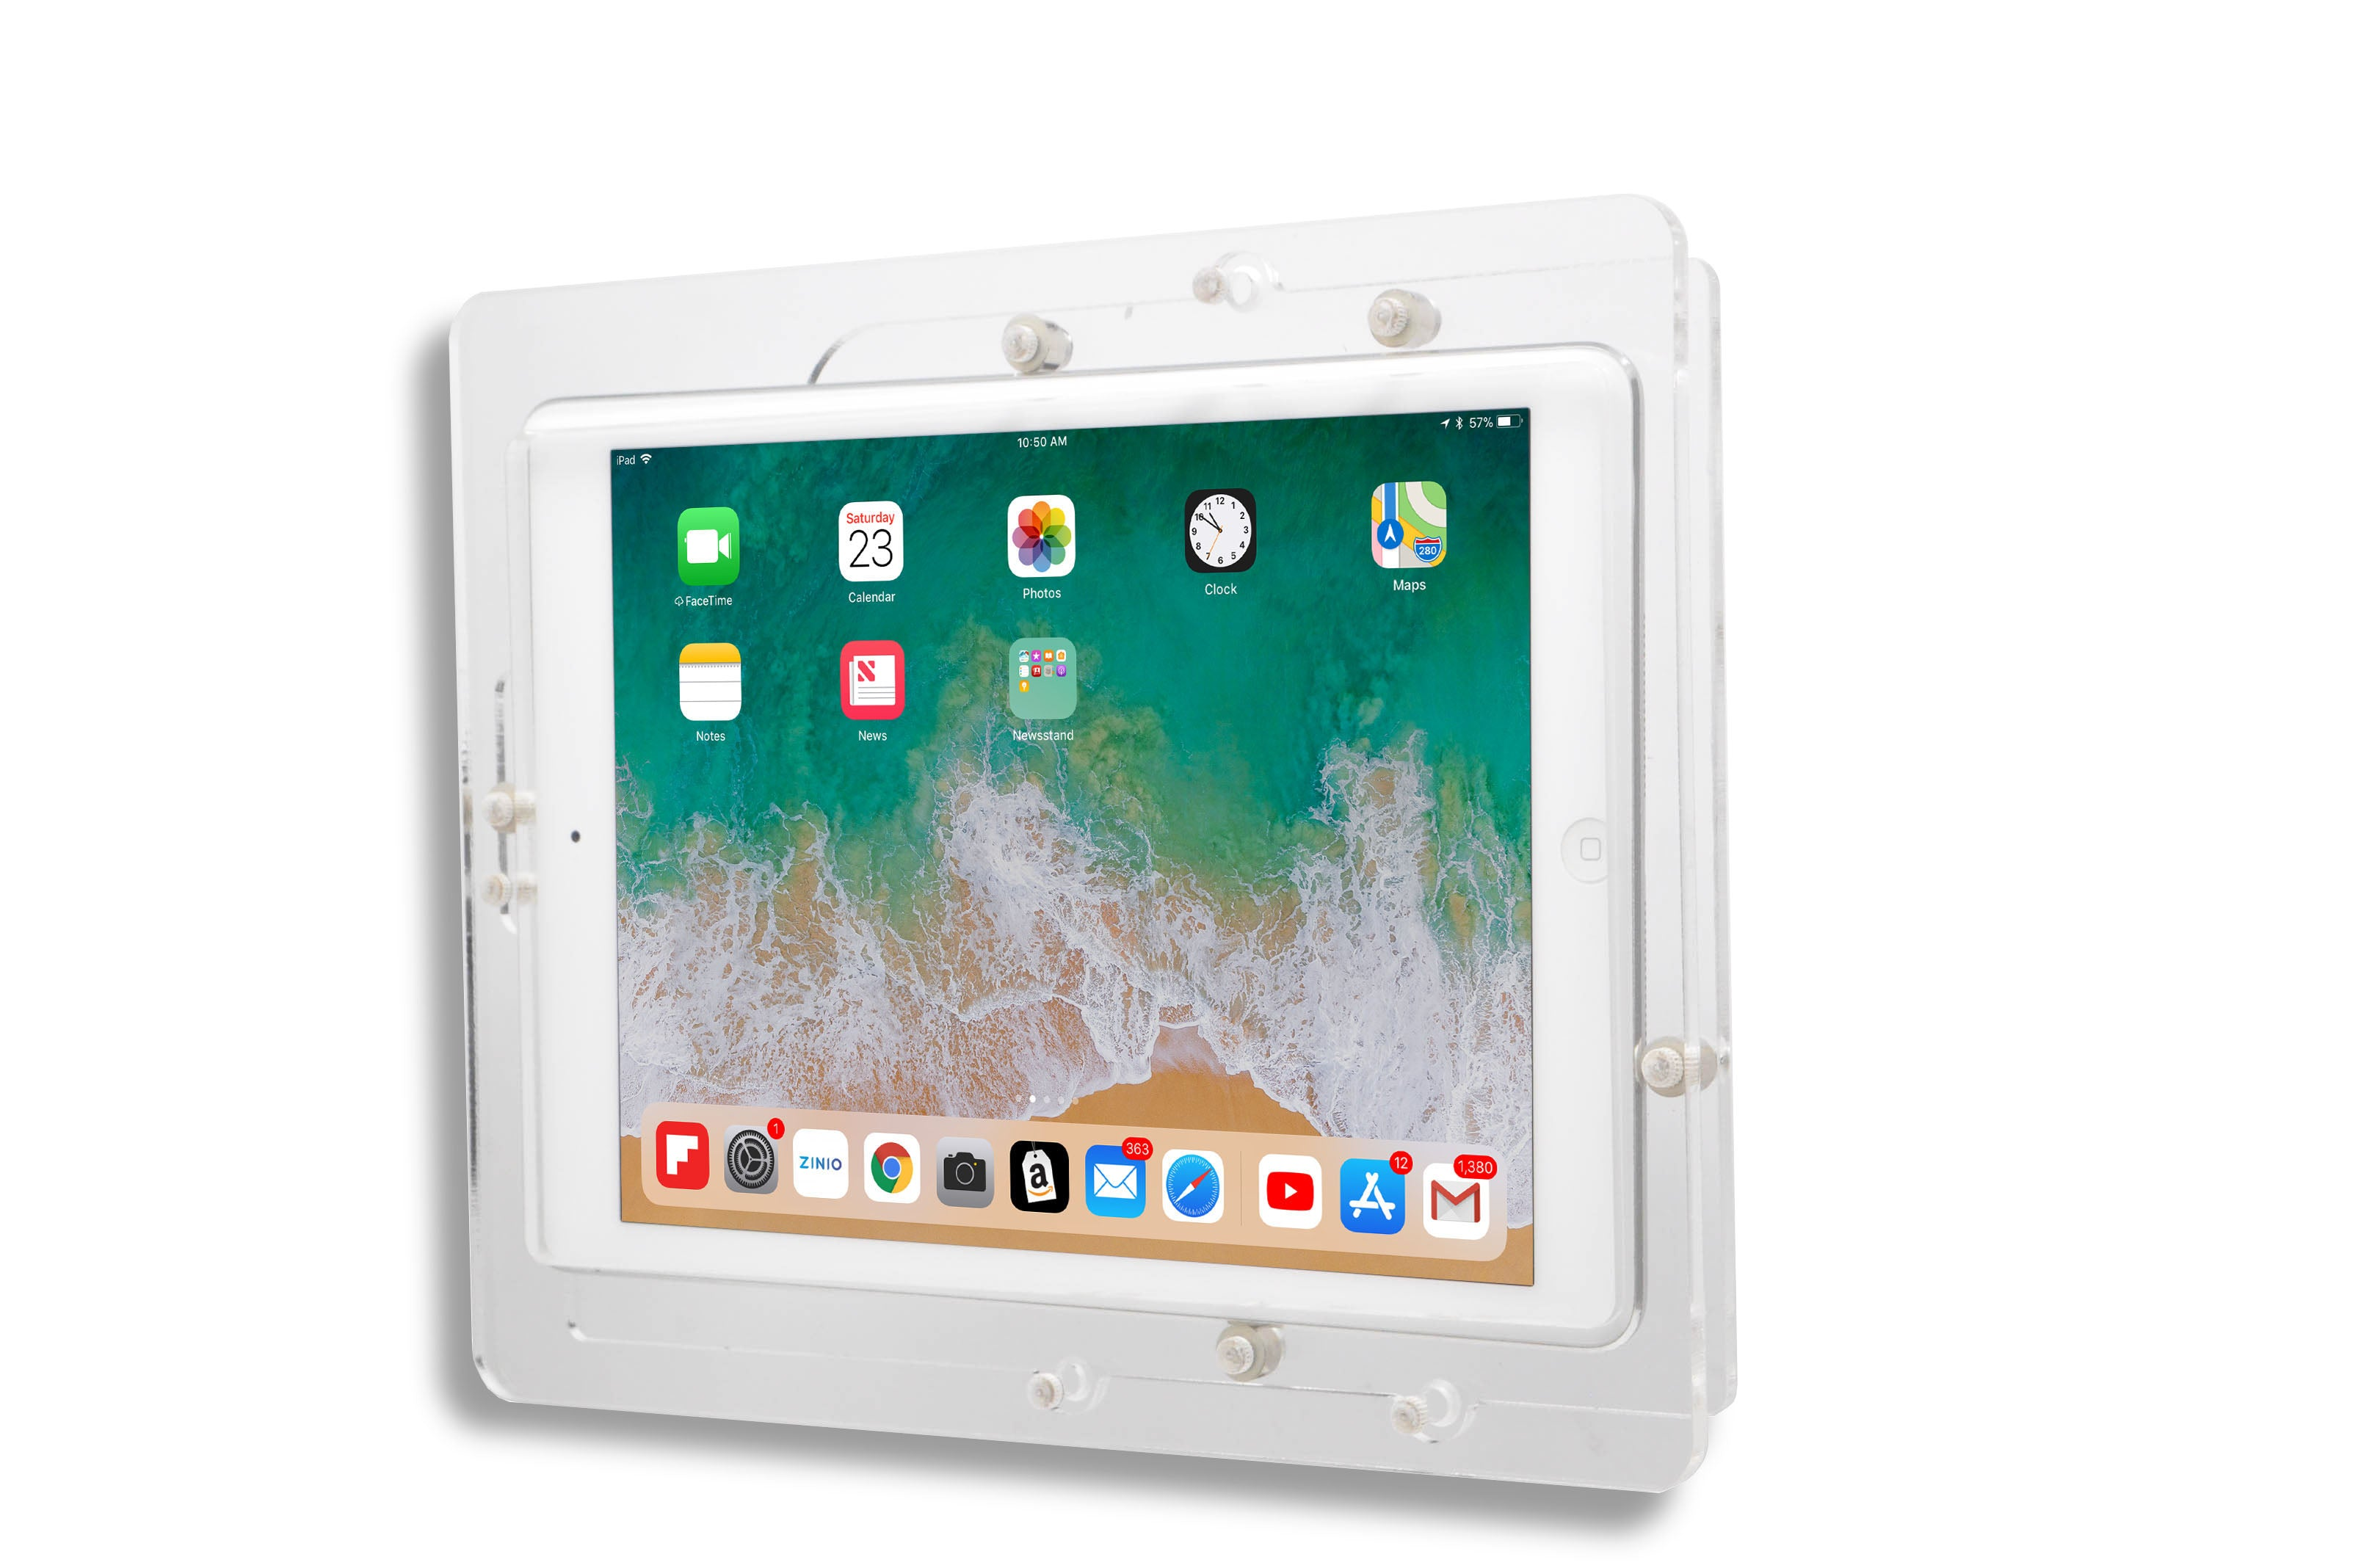 iPad, iPad Air, Security Acrylic VESA Kit with Wall Mount or Desktop Stand options